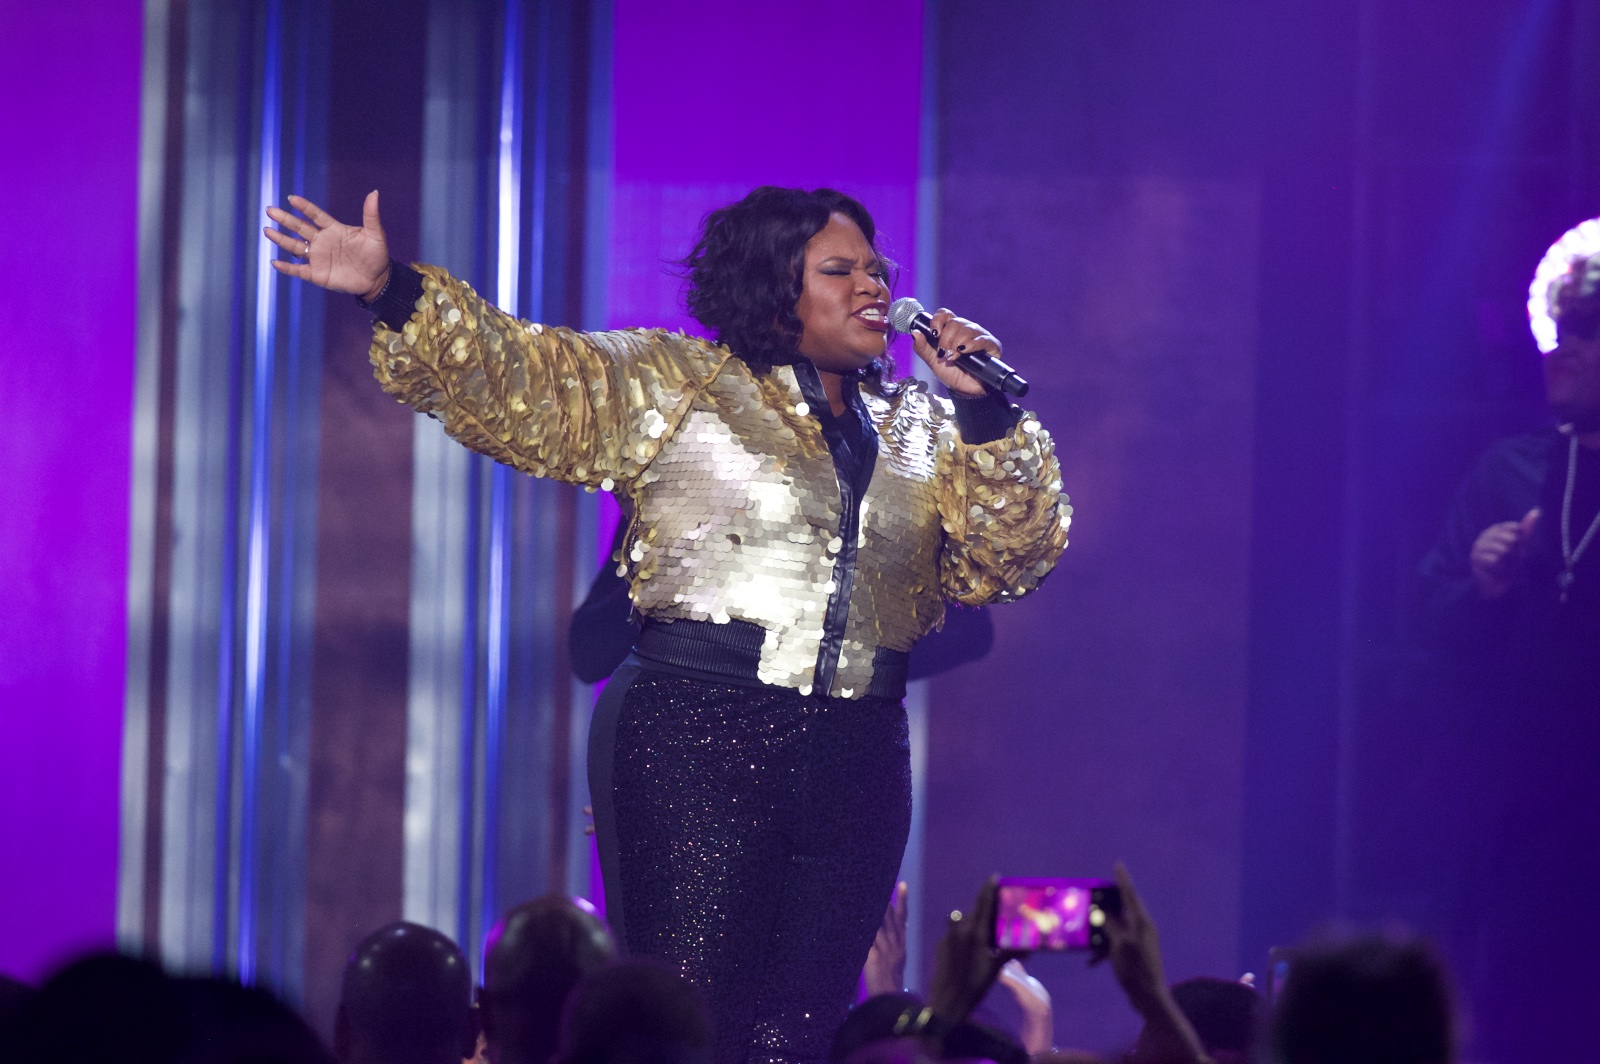 Tasha Cobbs performs at 2016 Stellar Awards.